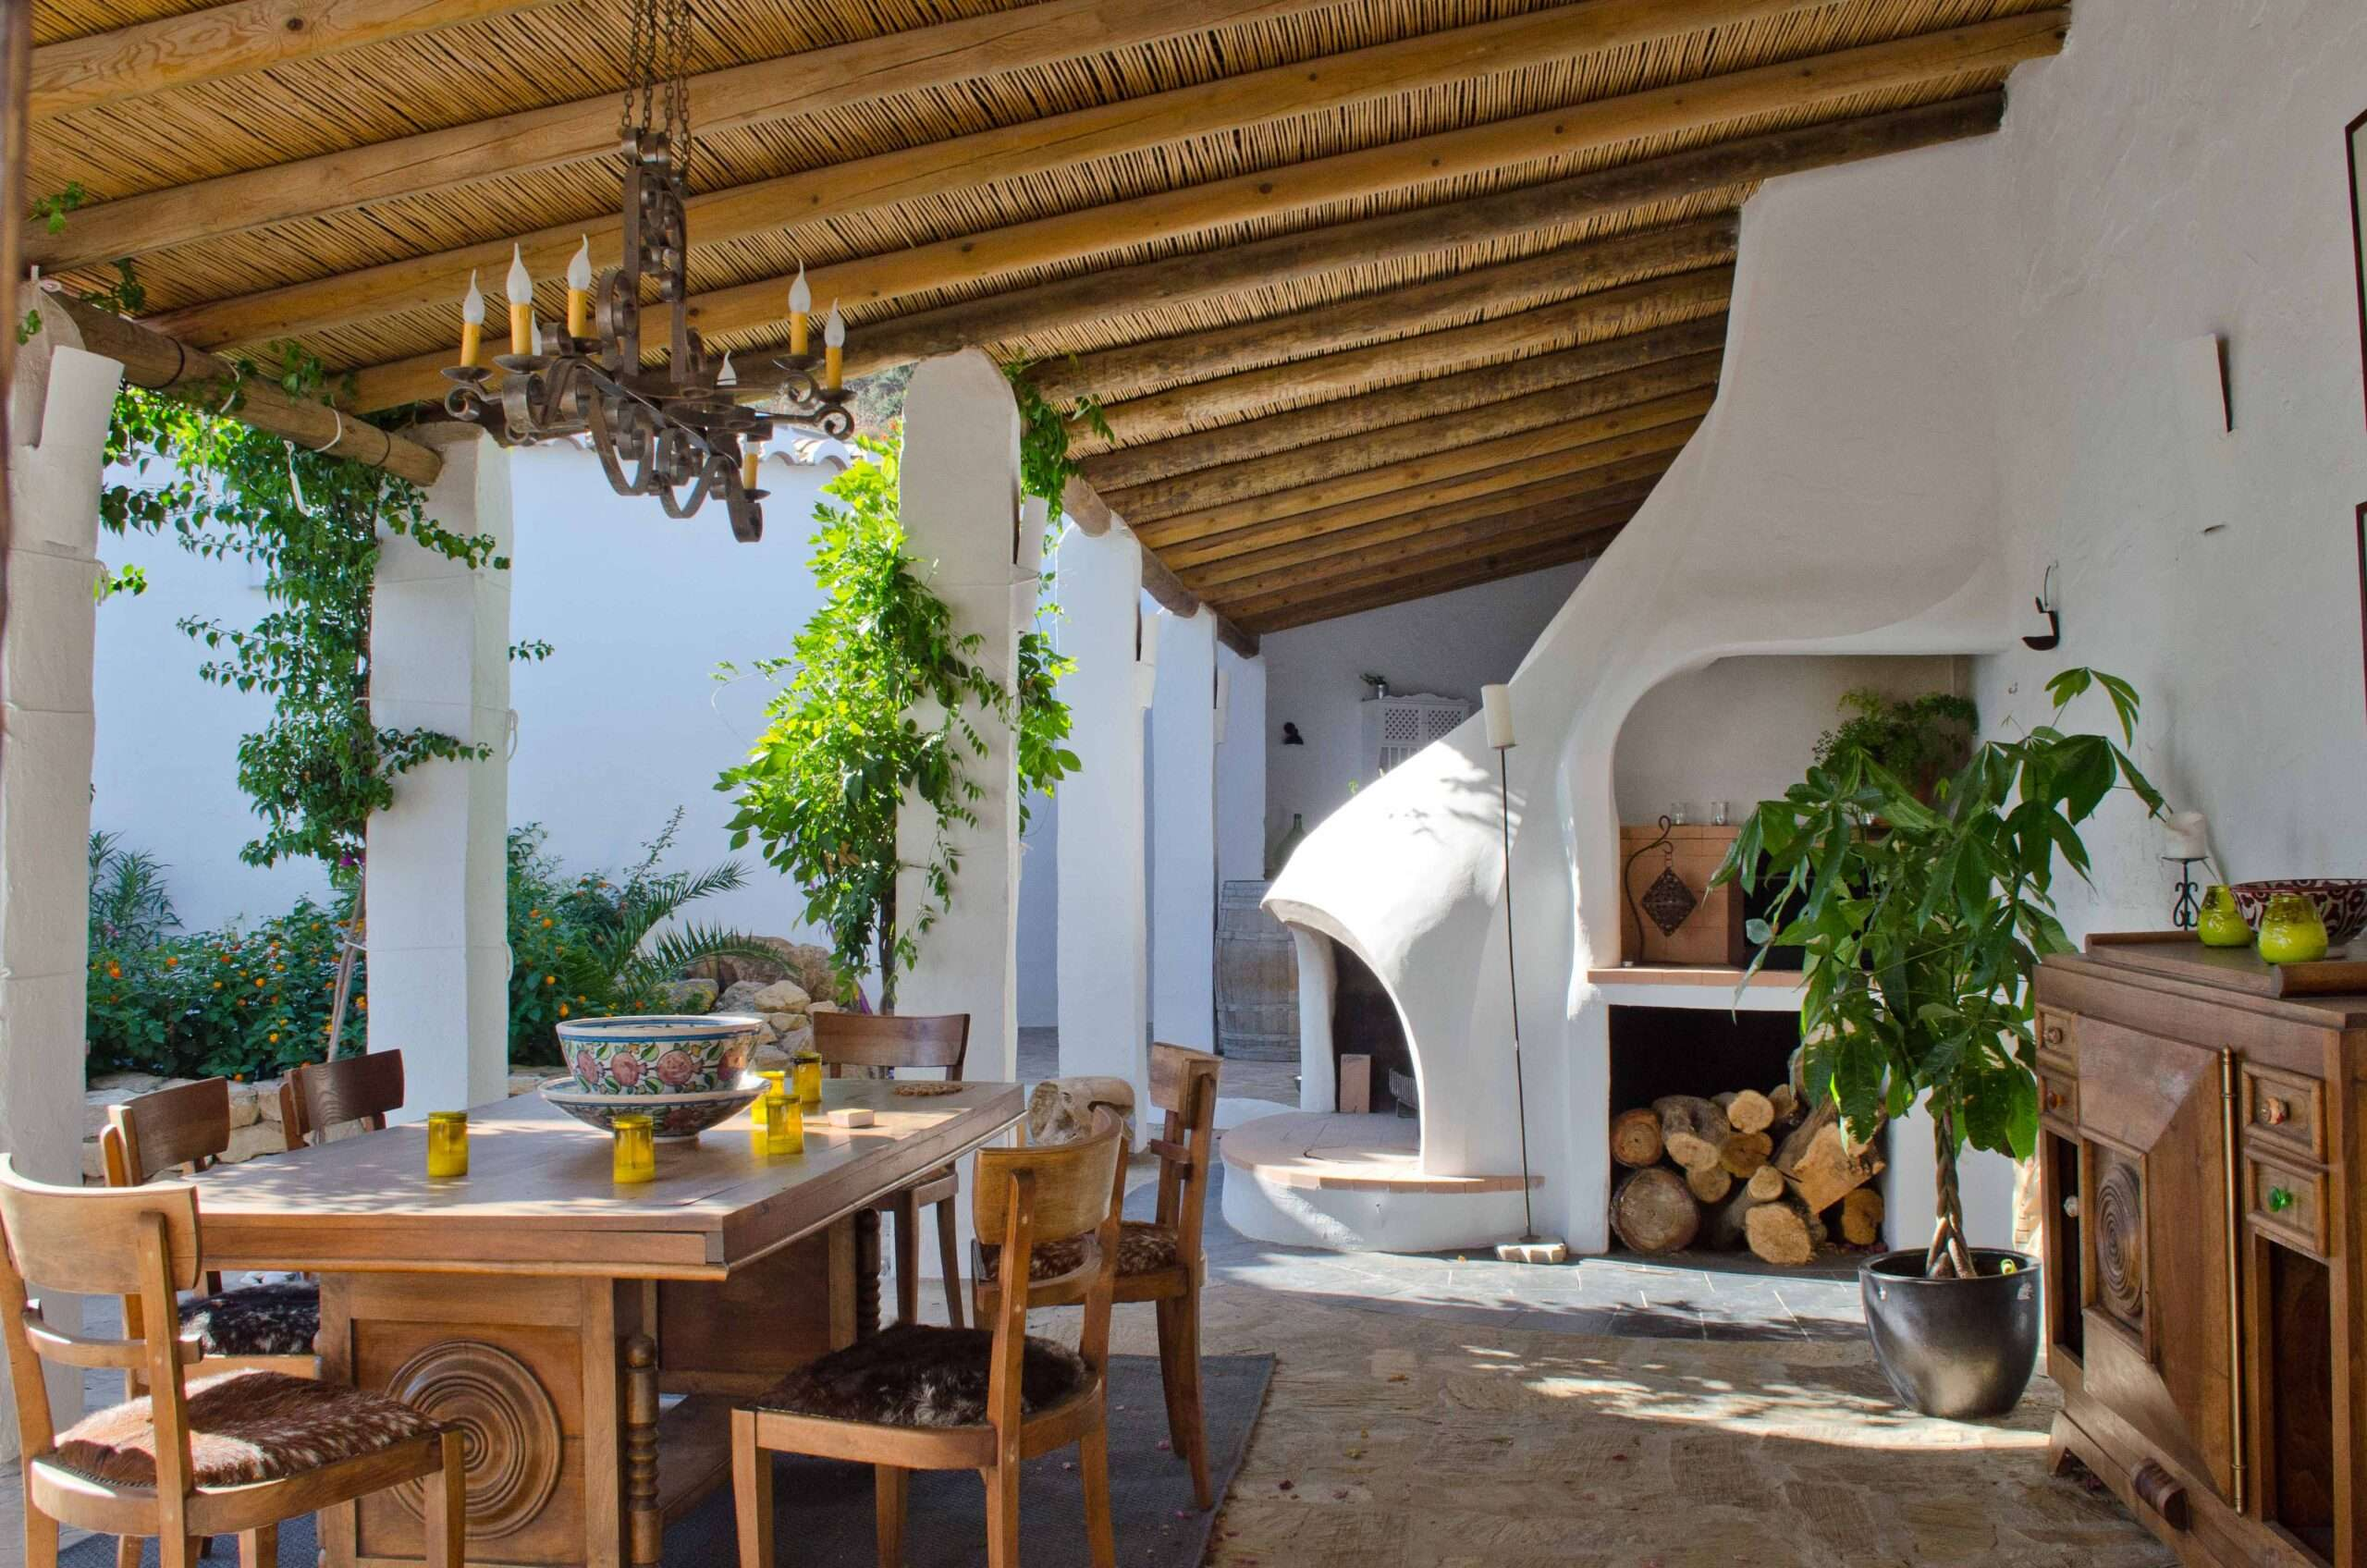 Open air kitchen and dining room at Villa El Carligto in Spain